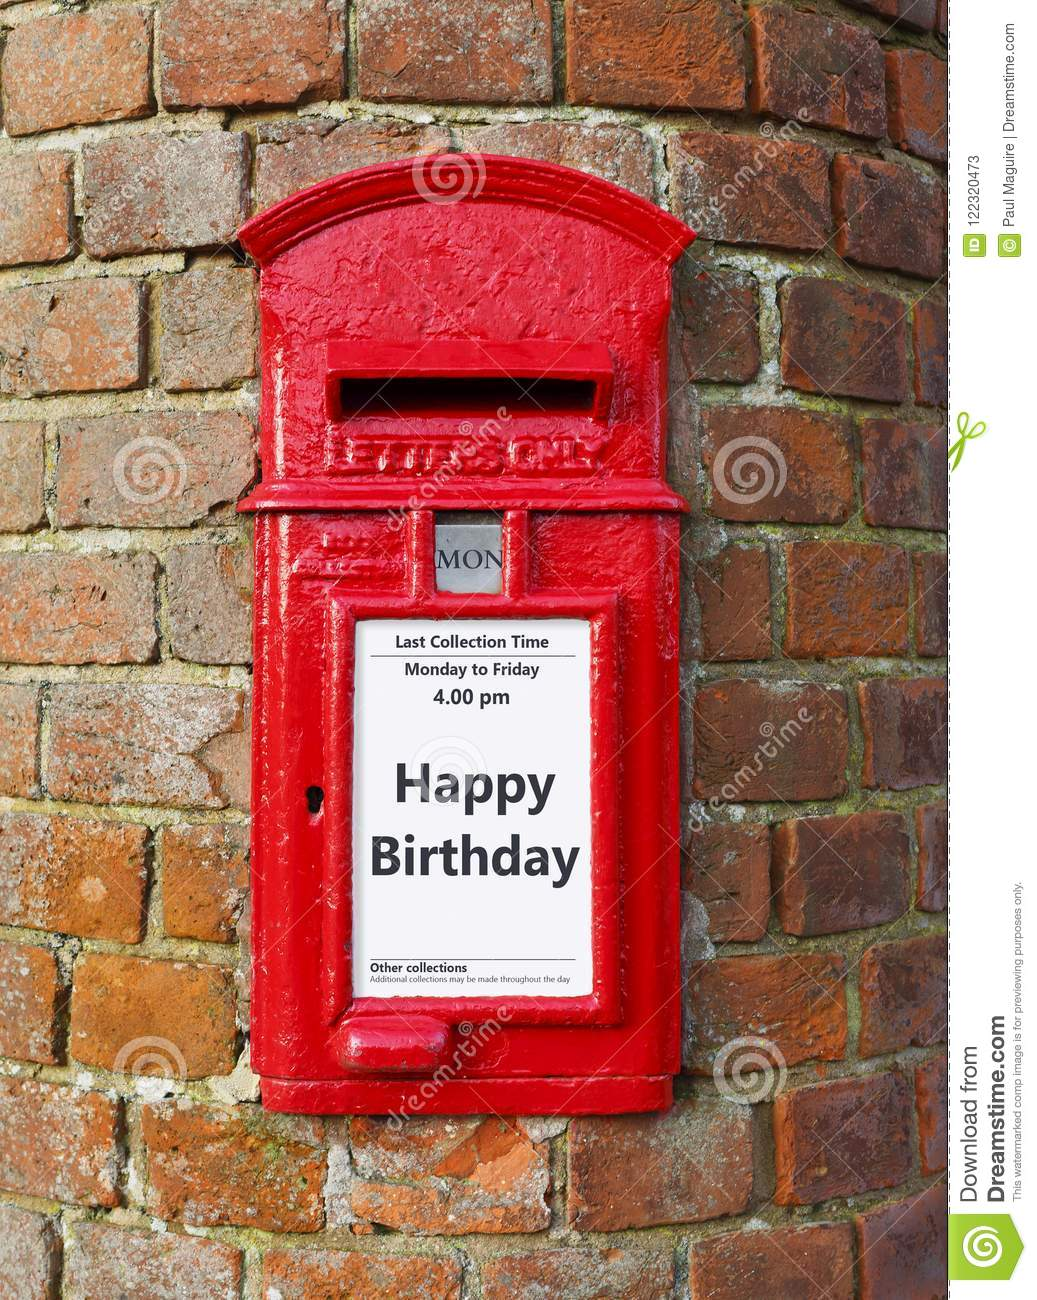 British Birthday Quotes. QuotesGram |British Expressions Happy Birthday